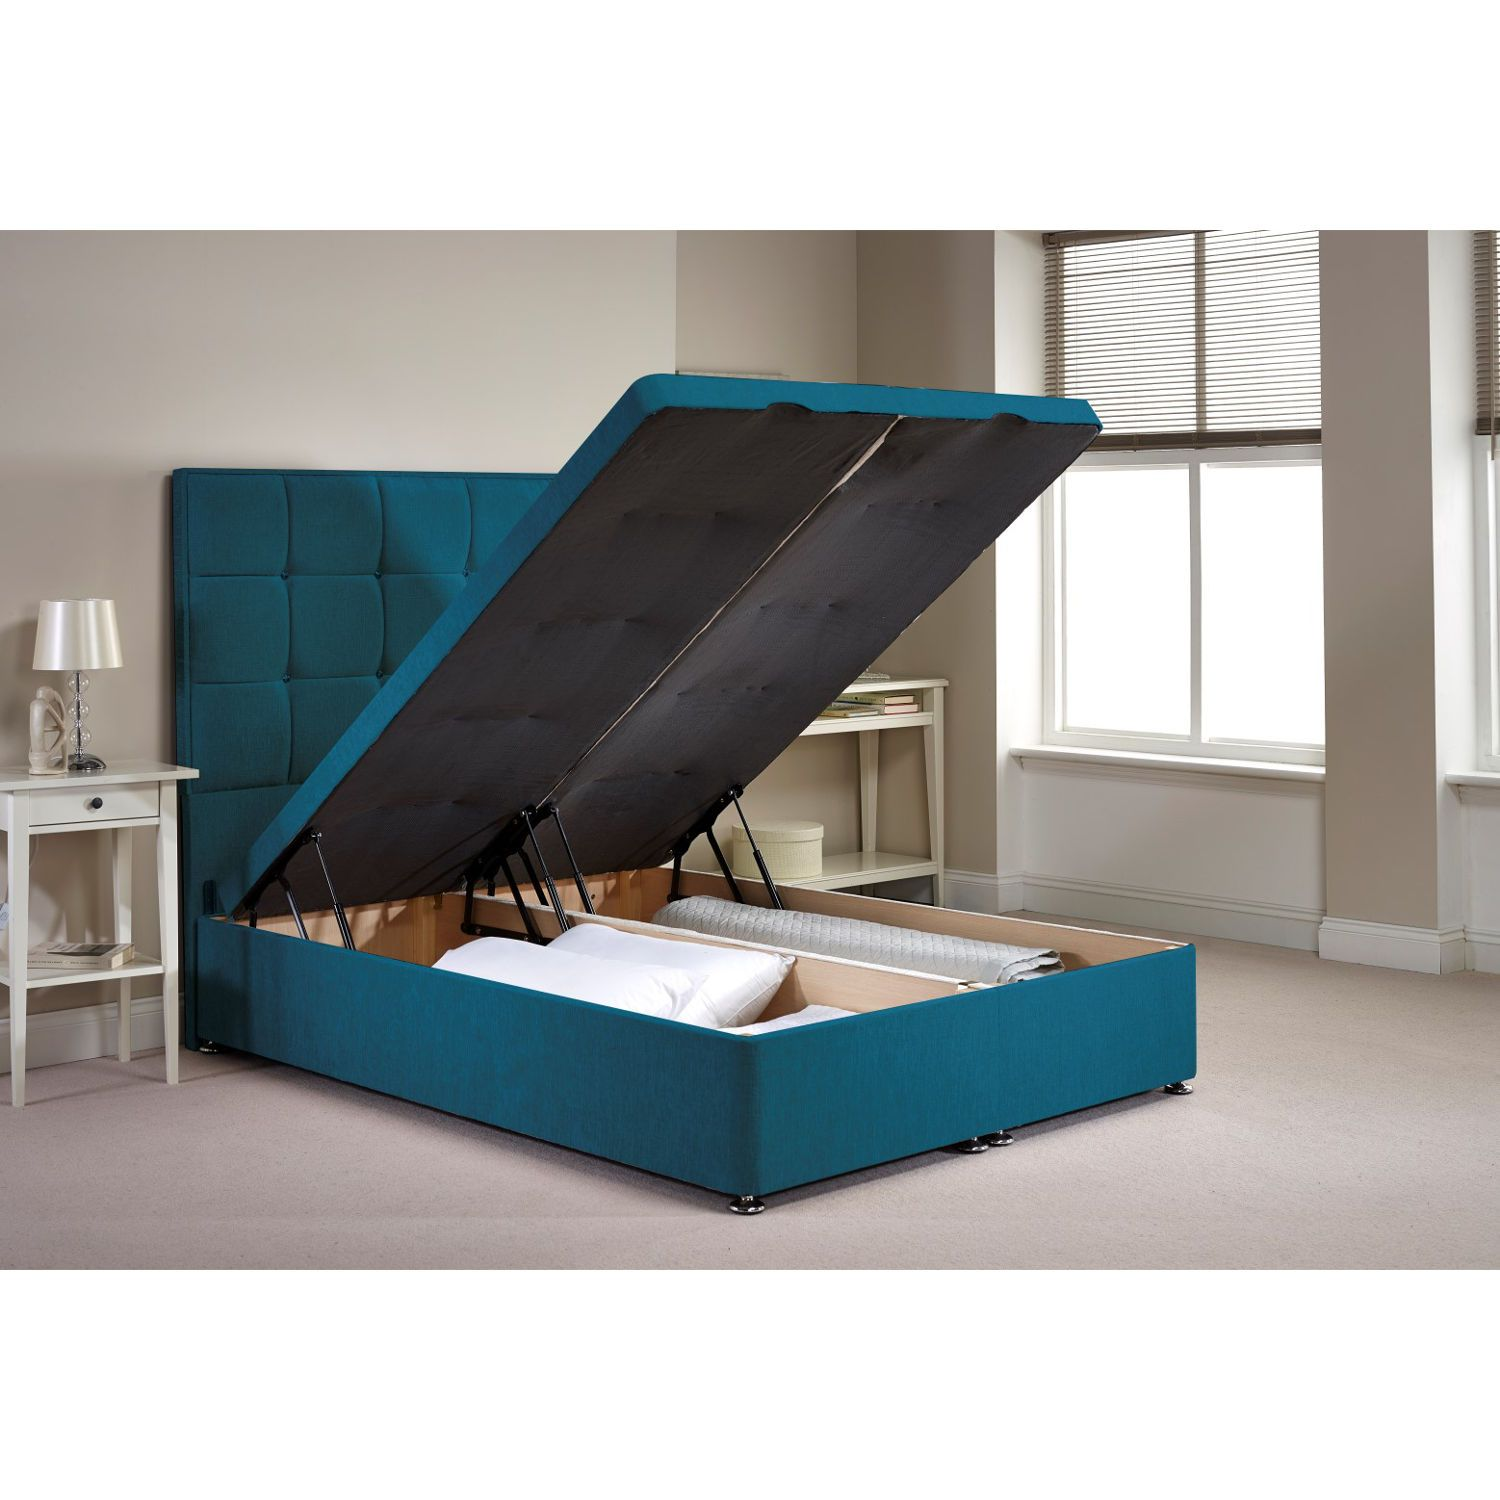 appian ottoman divan bed frame teal chenille fabric super king 6ft